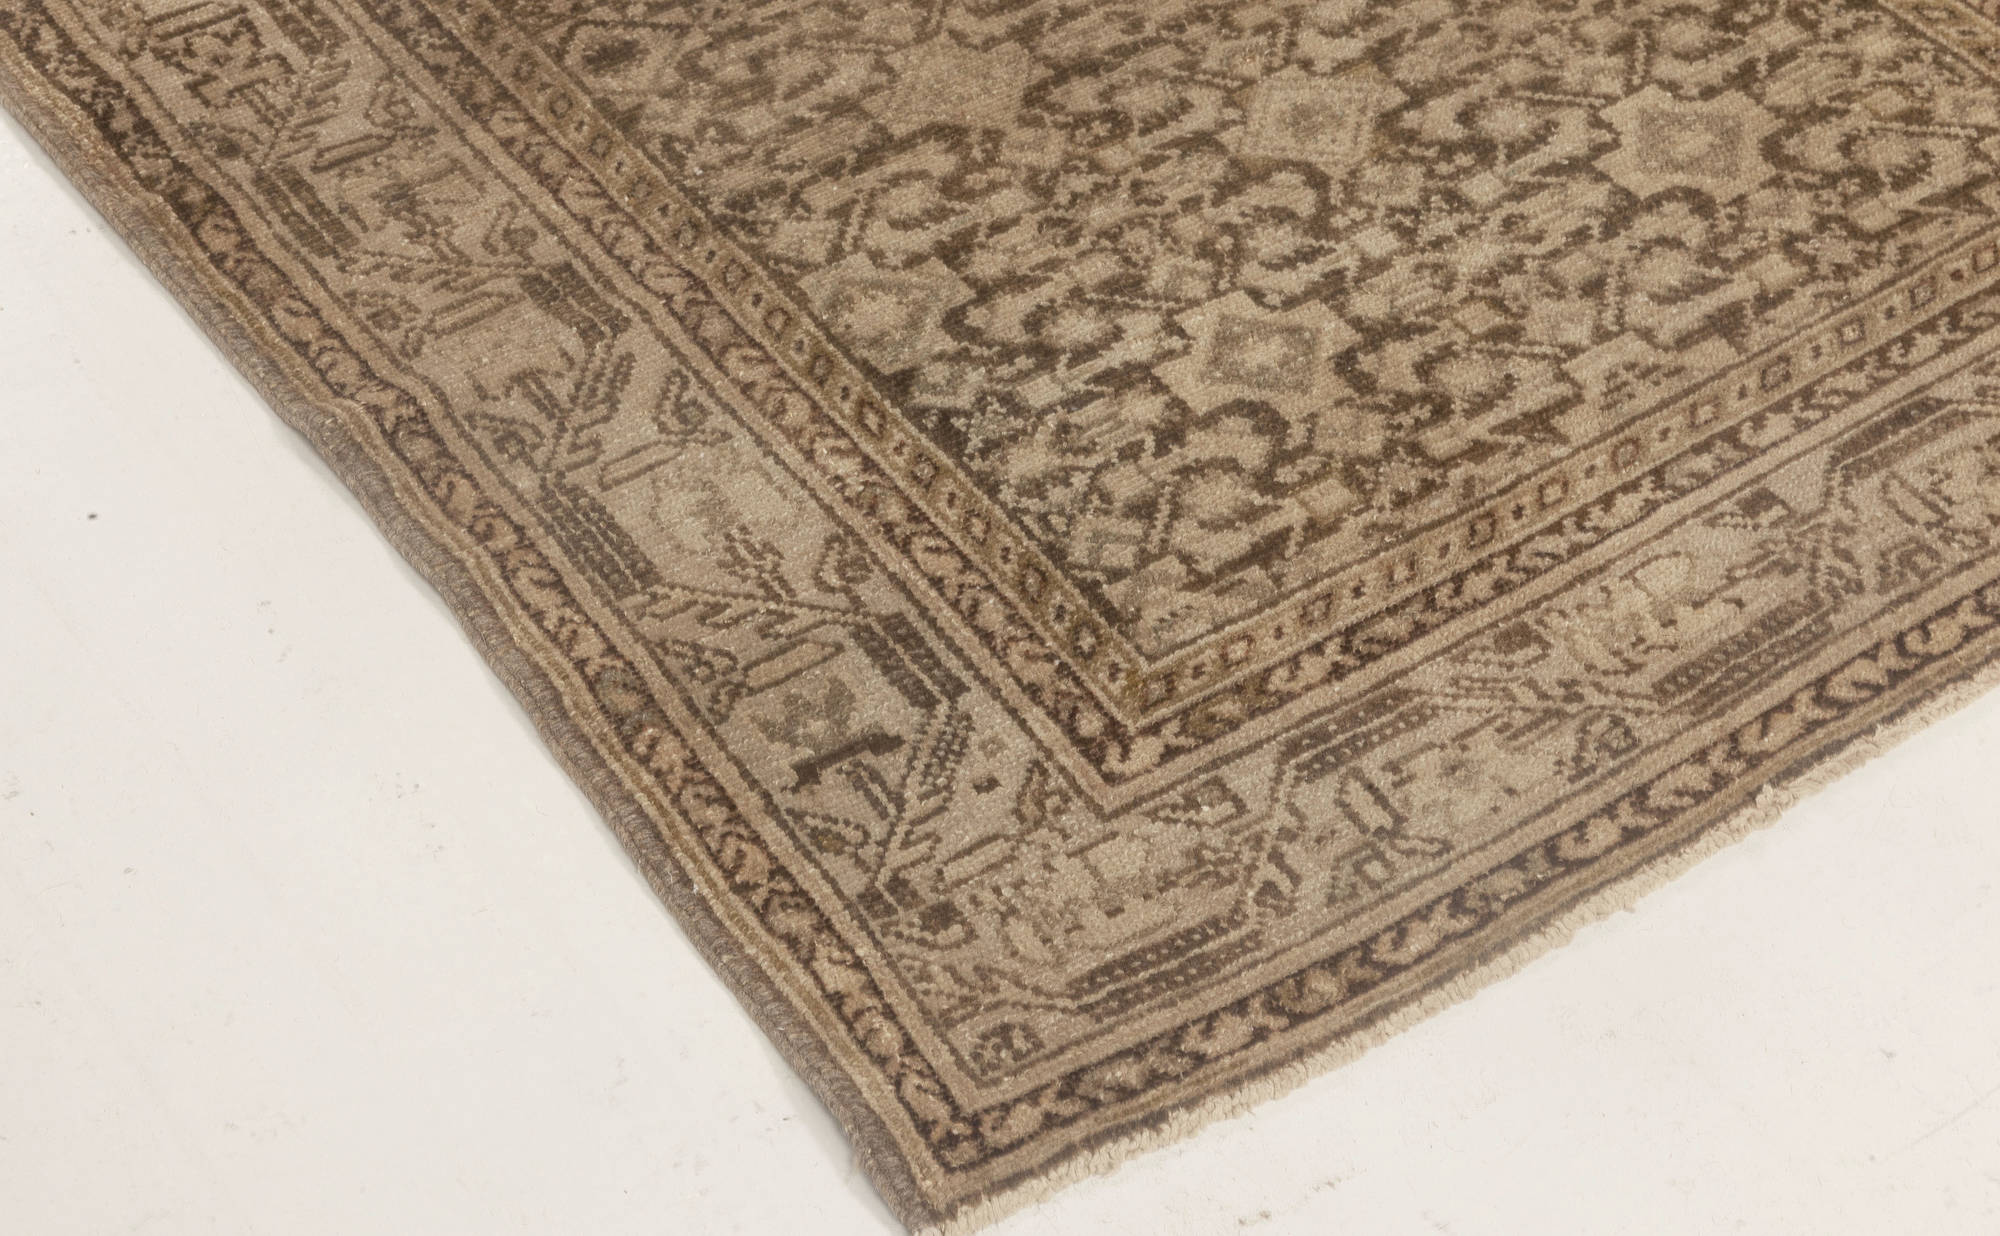 Antique Pair Of Malayer Runners Bb4591 By Doris Leslie Blau